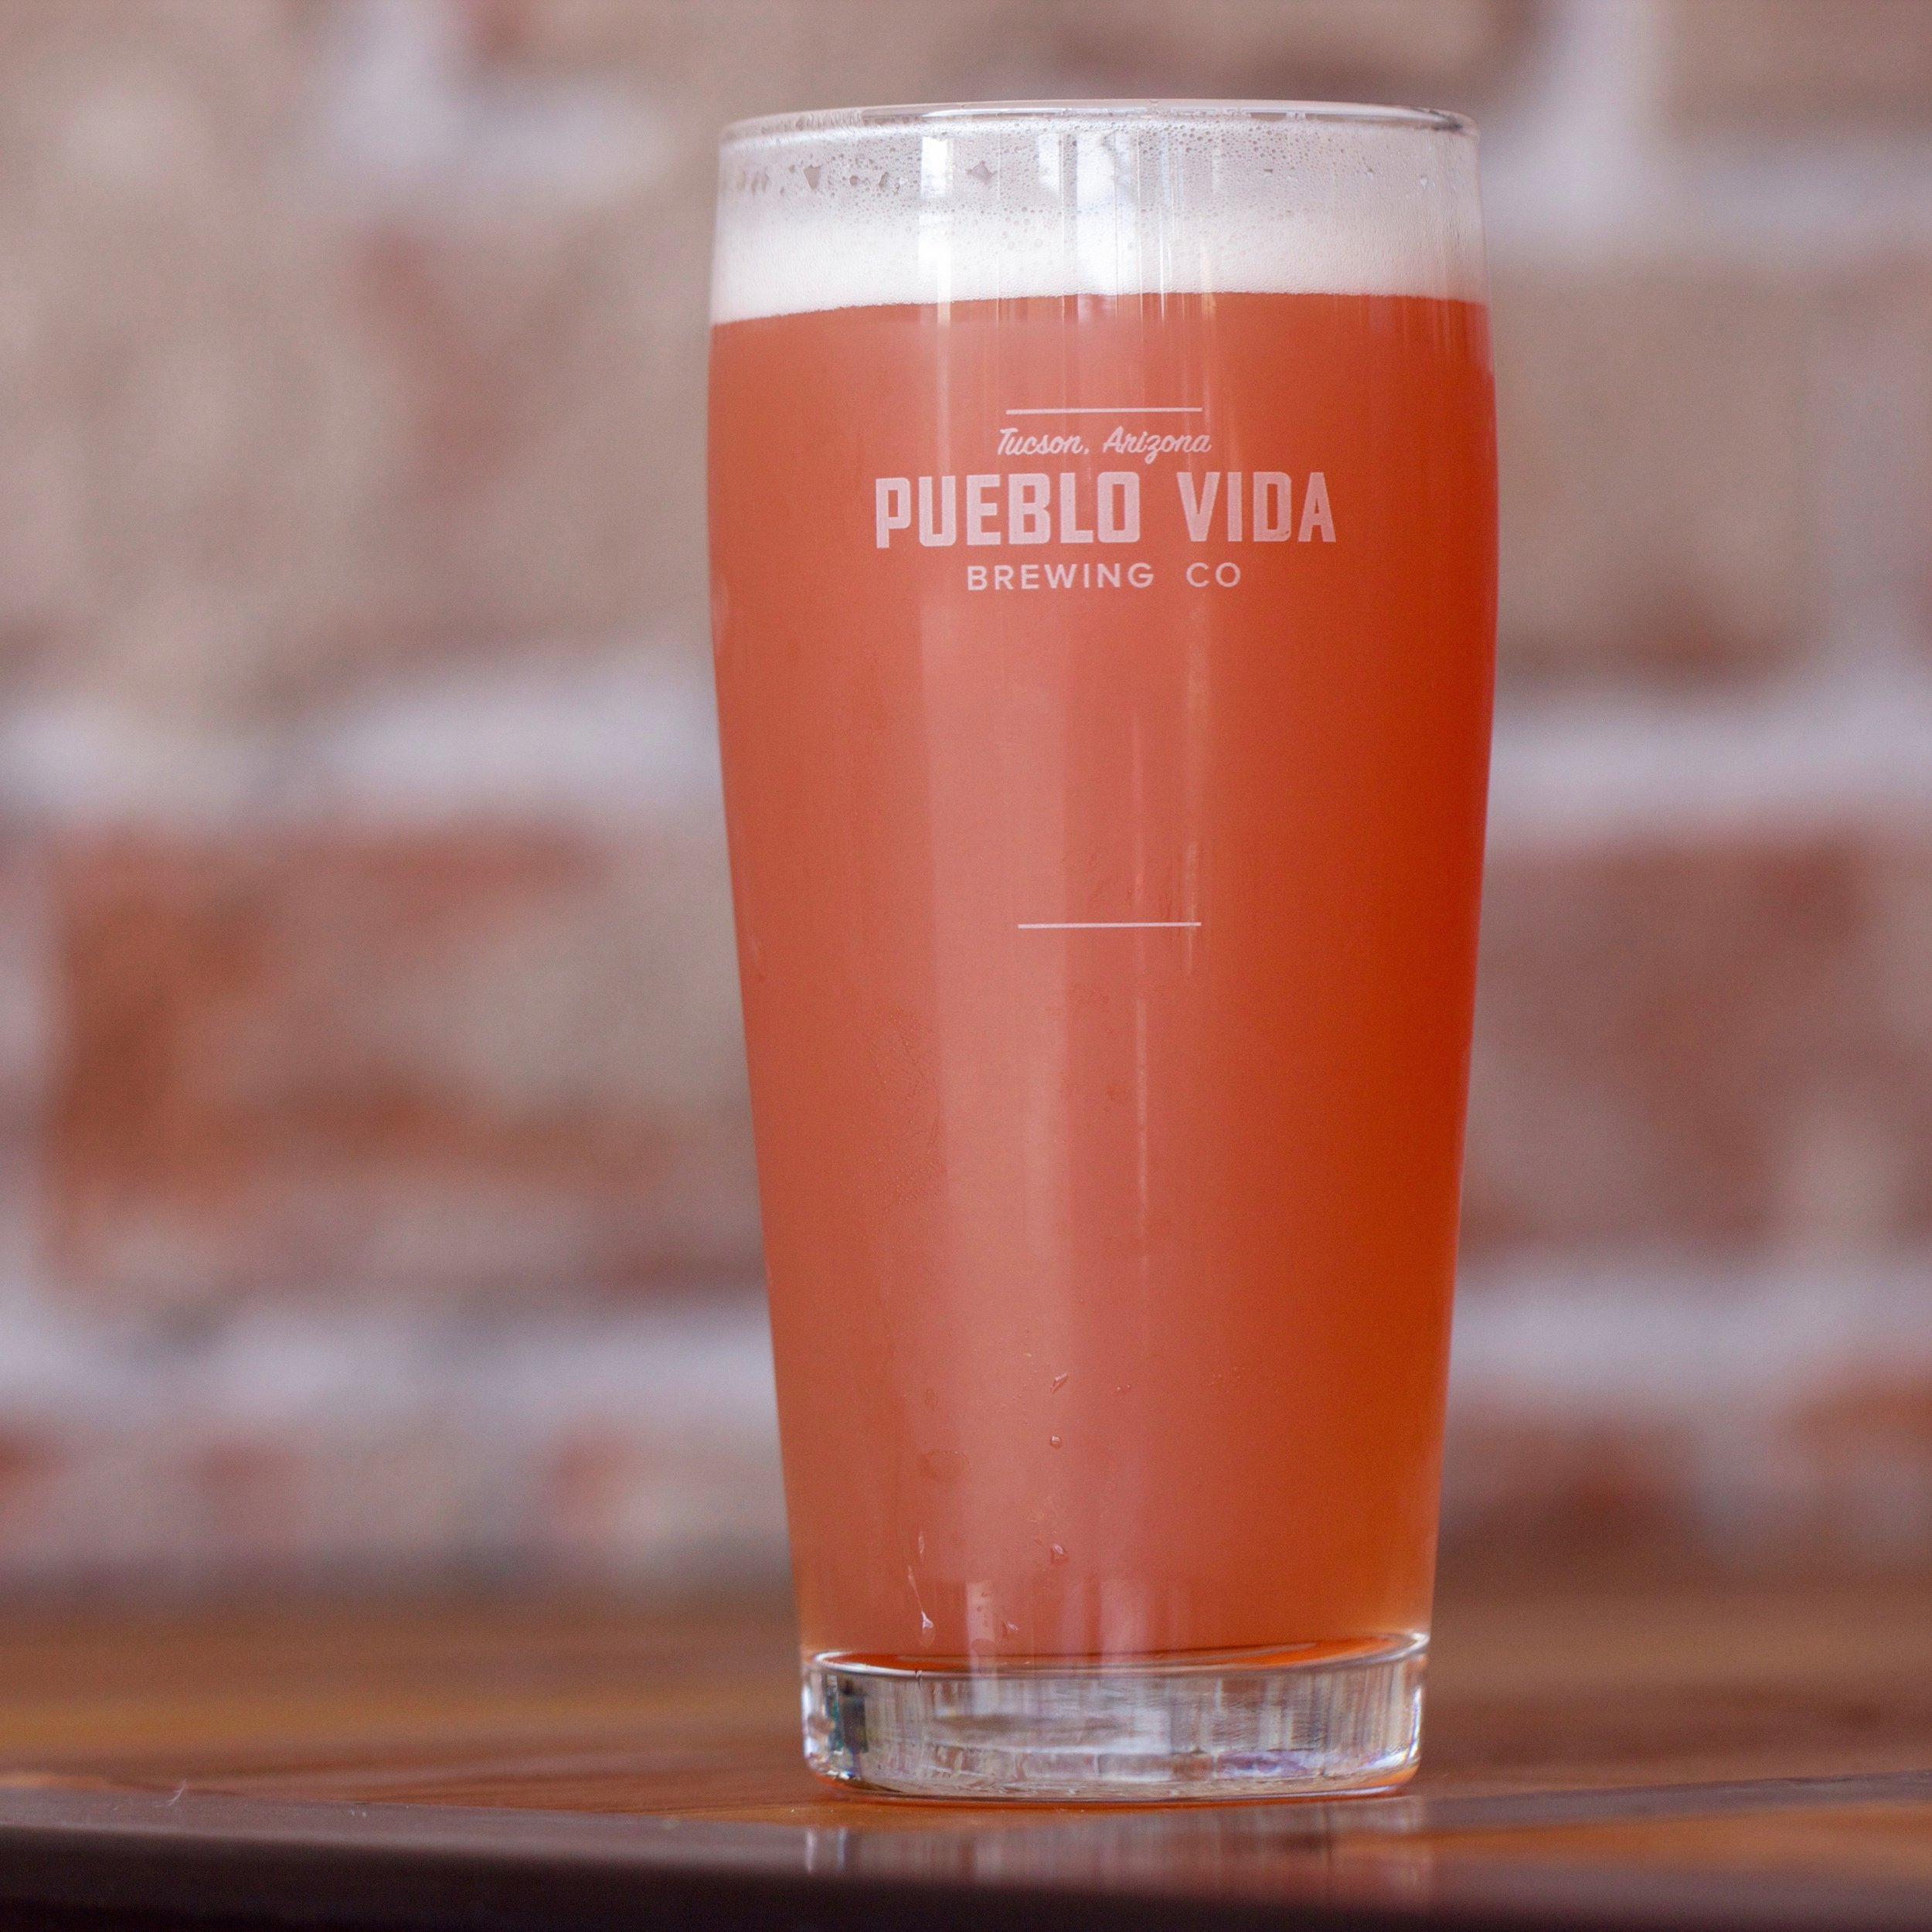 Pueblo Vida Brewing